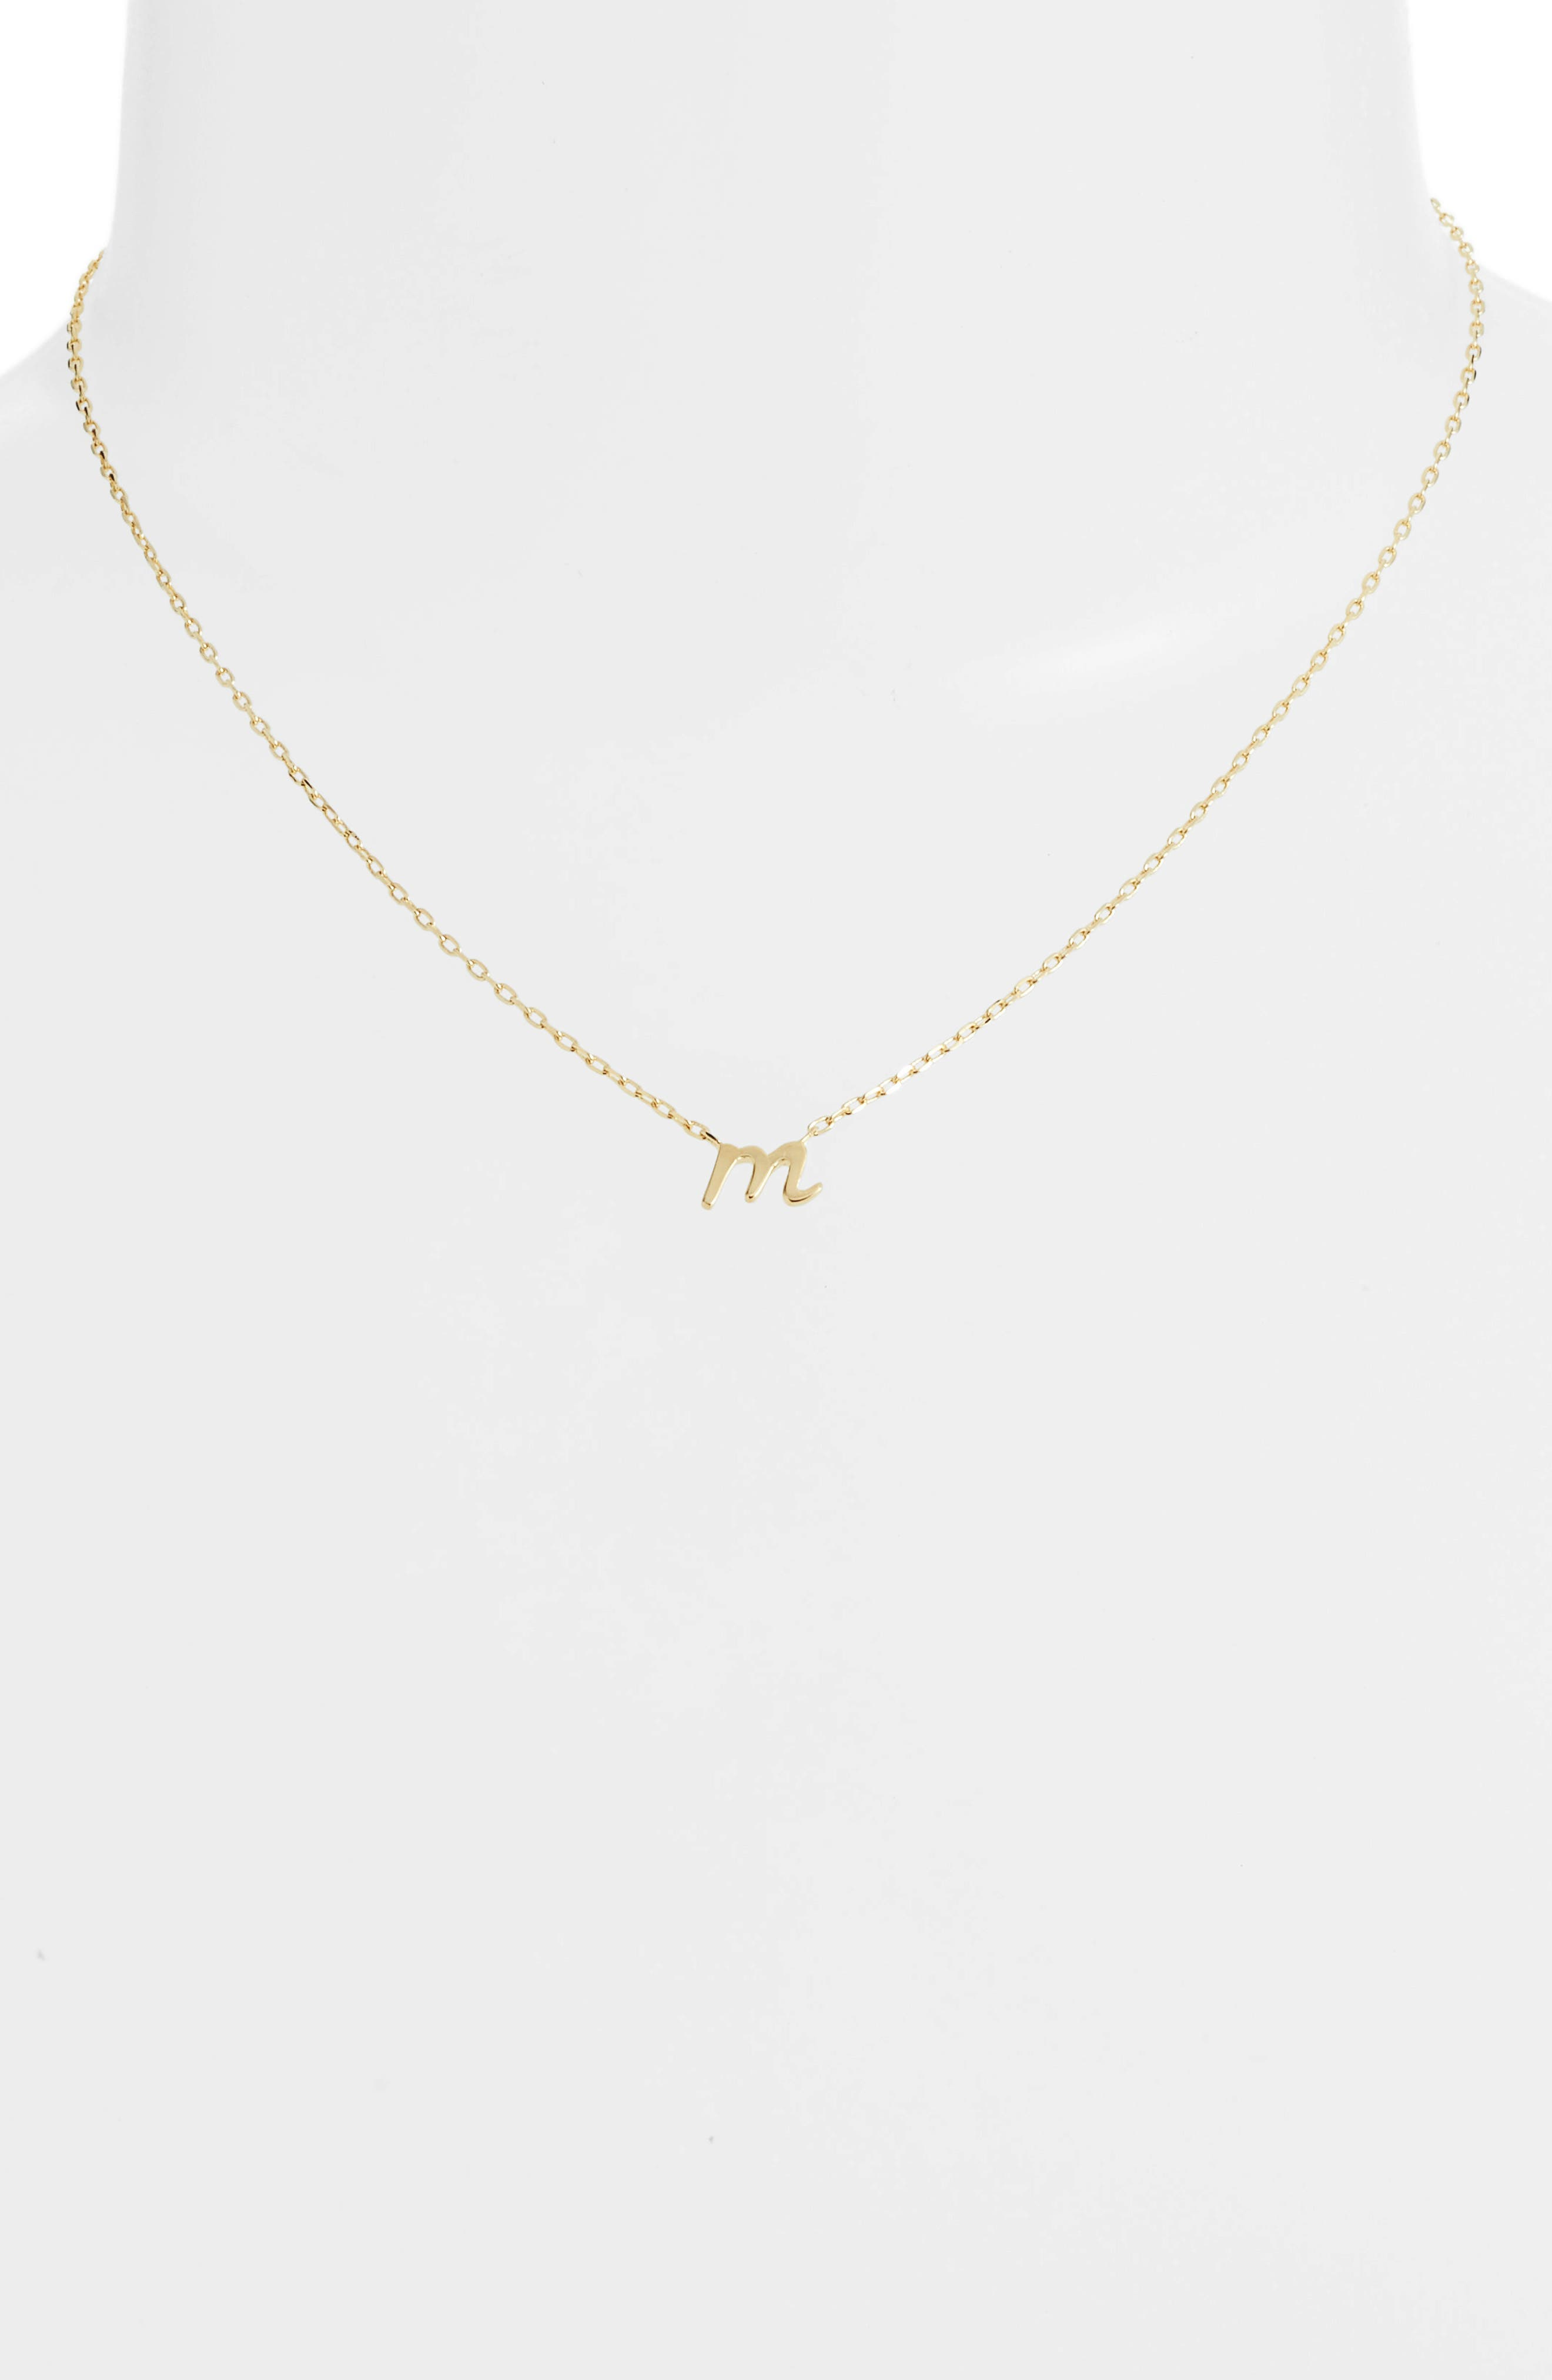 kate spade one in a million initial pendant necklace,                             Alternate thumbnail 2, color,                             M-GOLD